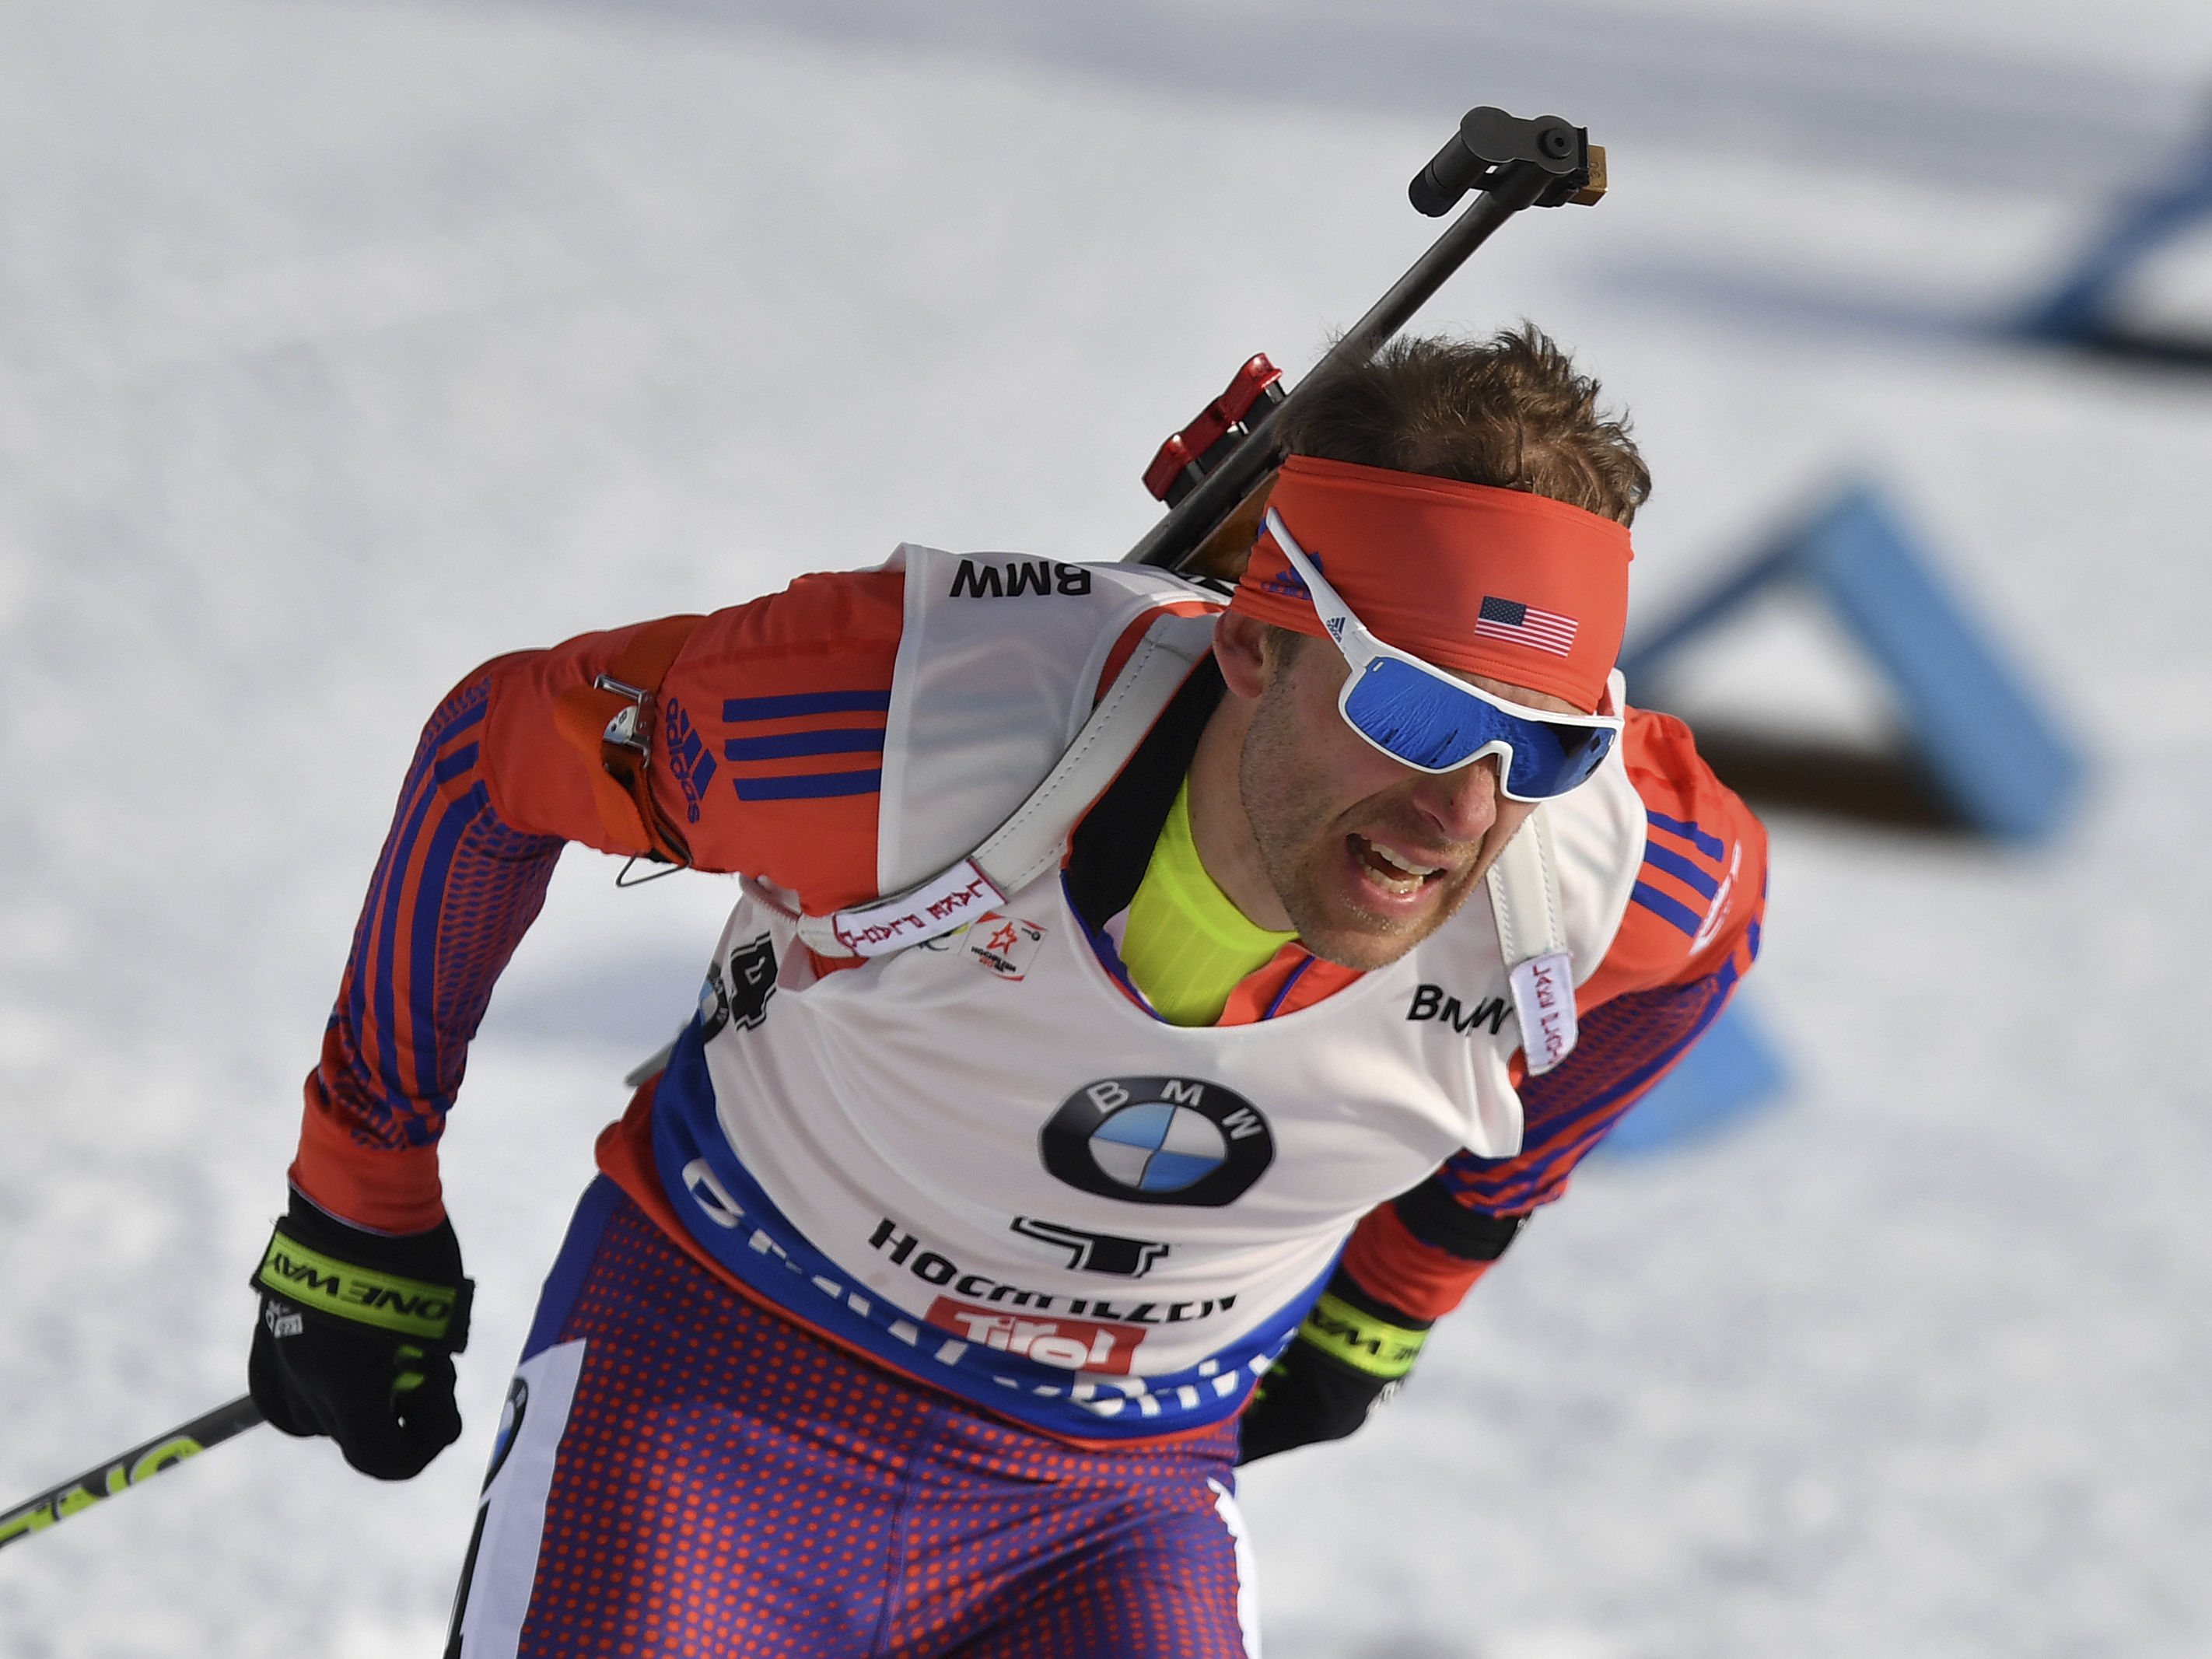 United States's Lowell Bailey competes during the men's 12.5 km pursuit competition at the Biathlon World Championships in Hochfilzen, Austrian province of Tyrol , Austria, Sunday, Feb. 12, 2017. (AP Photo/Kerstin Joensson)